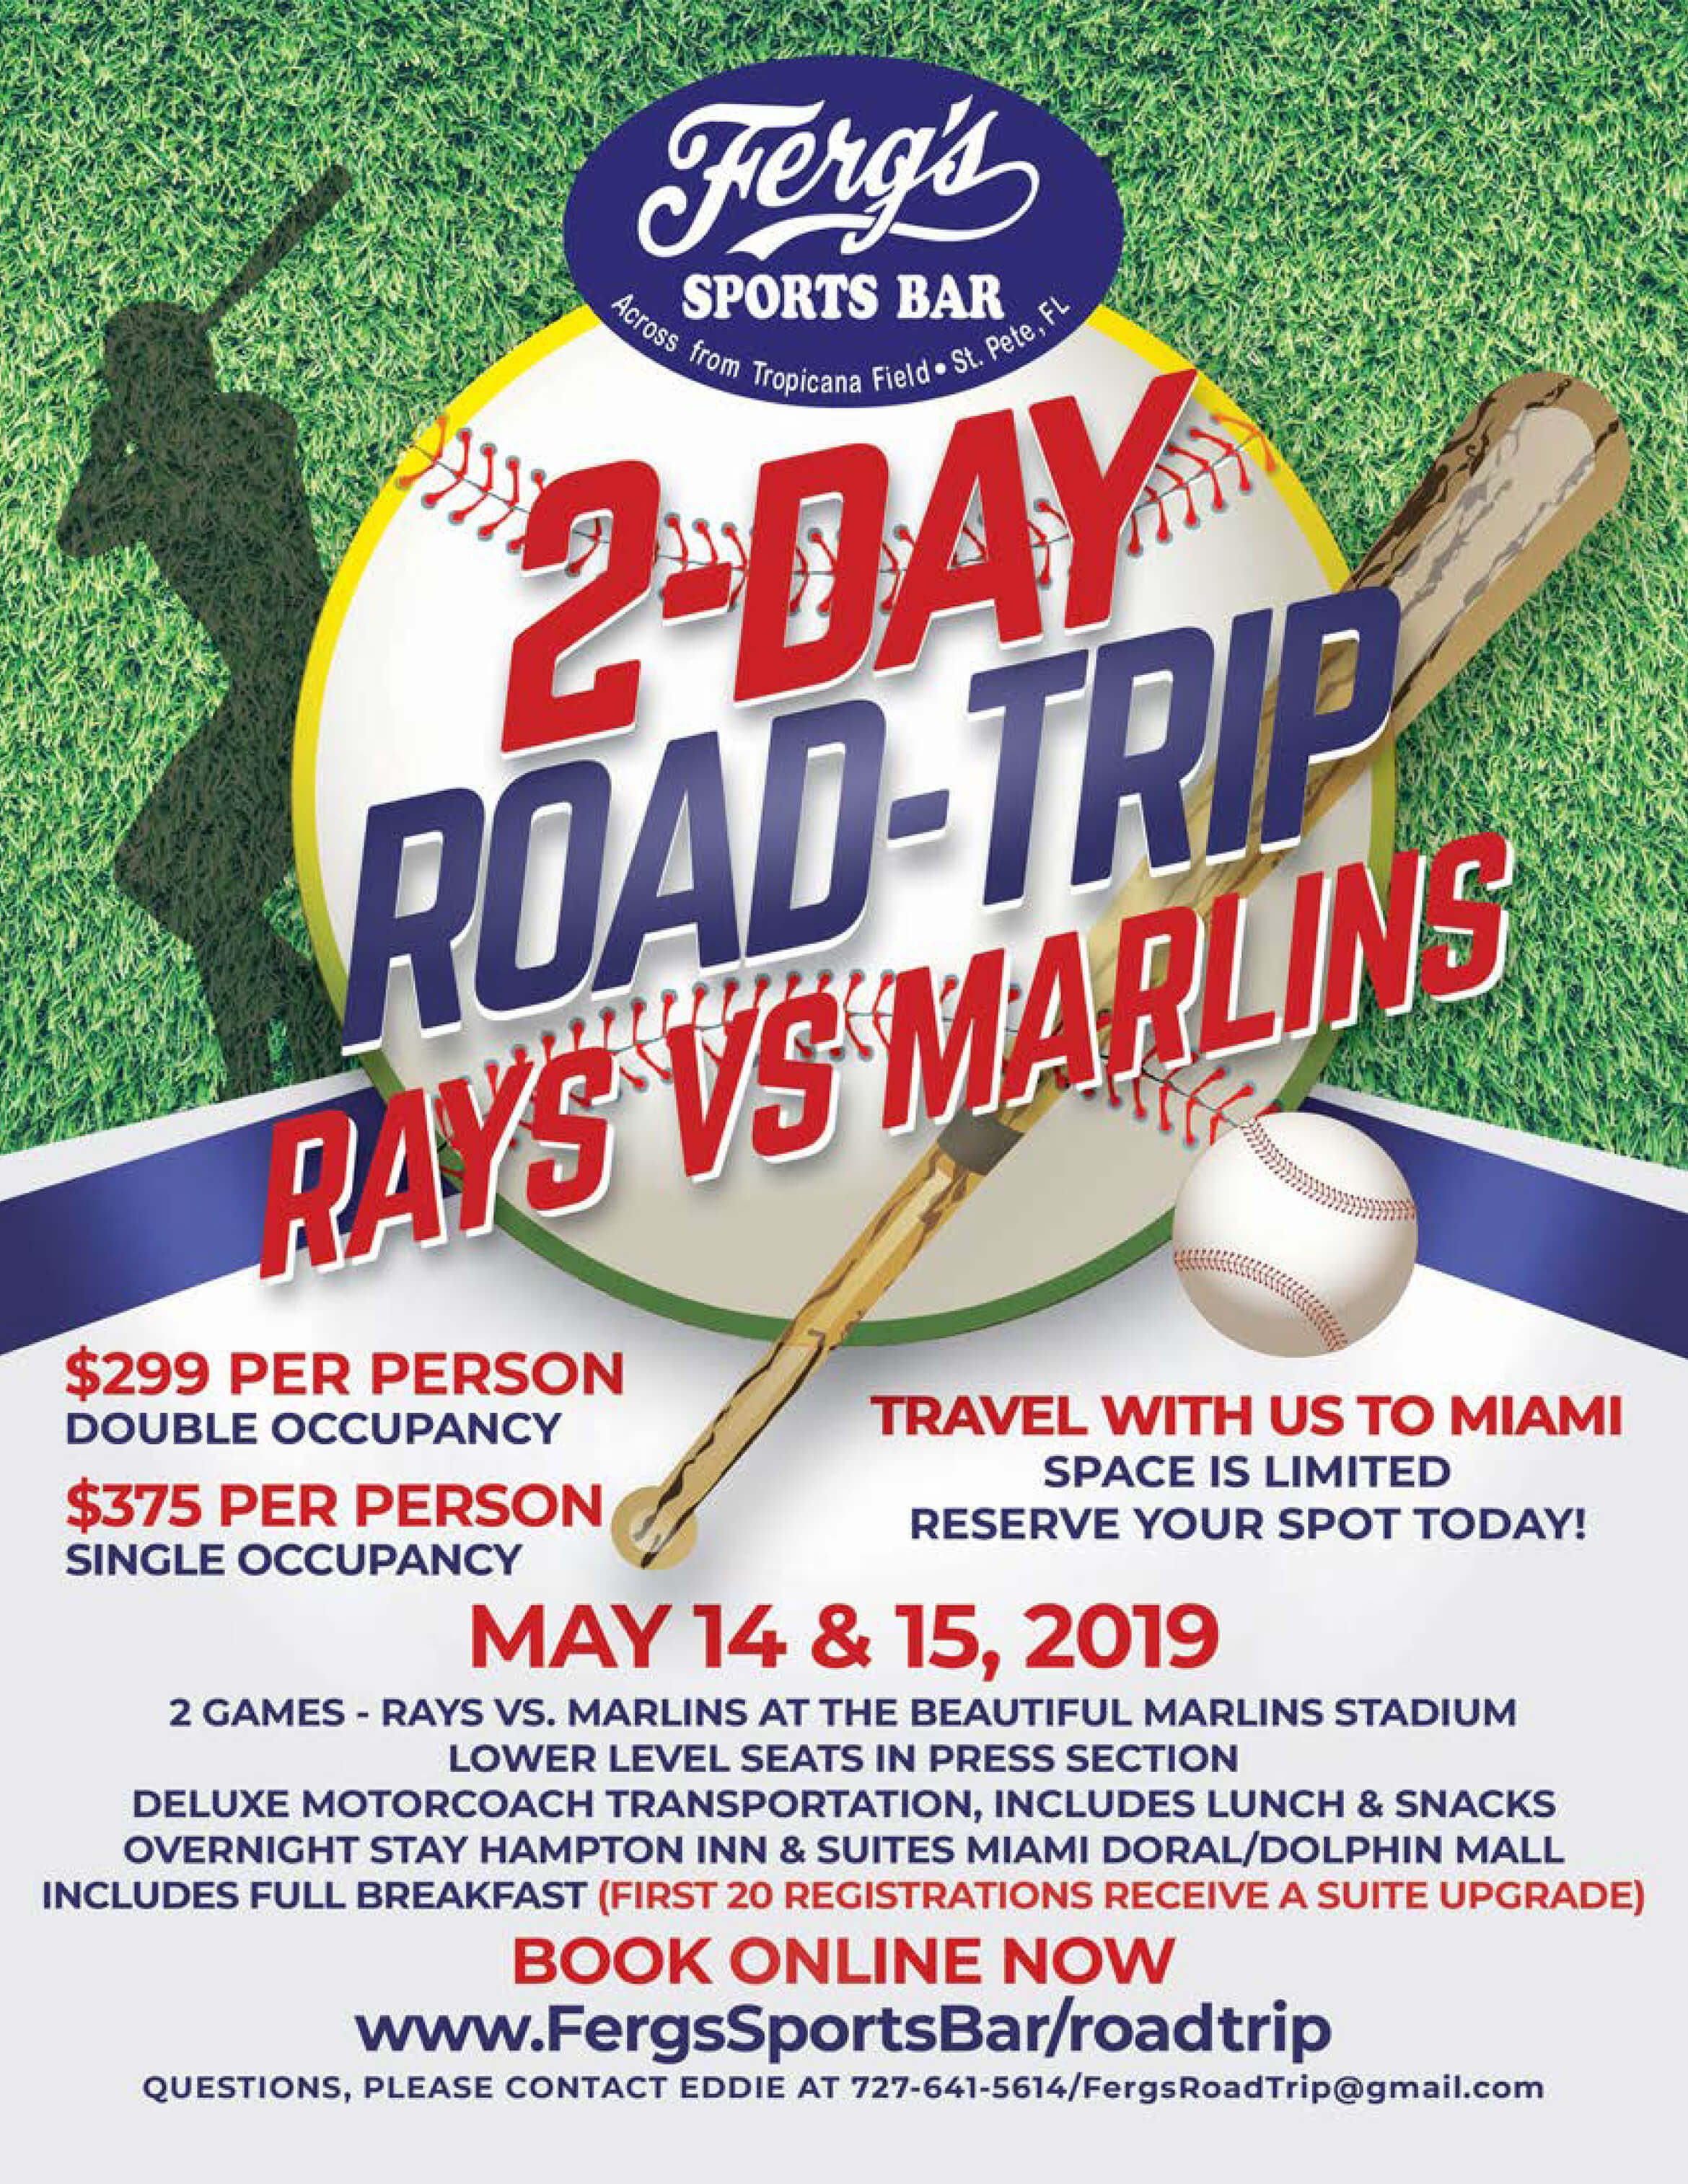 Rays vs. Marlins 2-Day Road Trip!